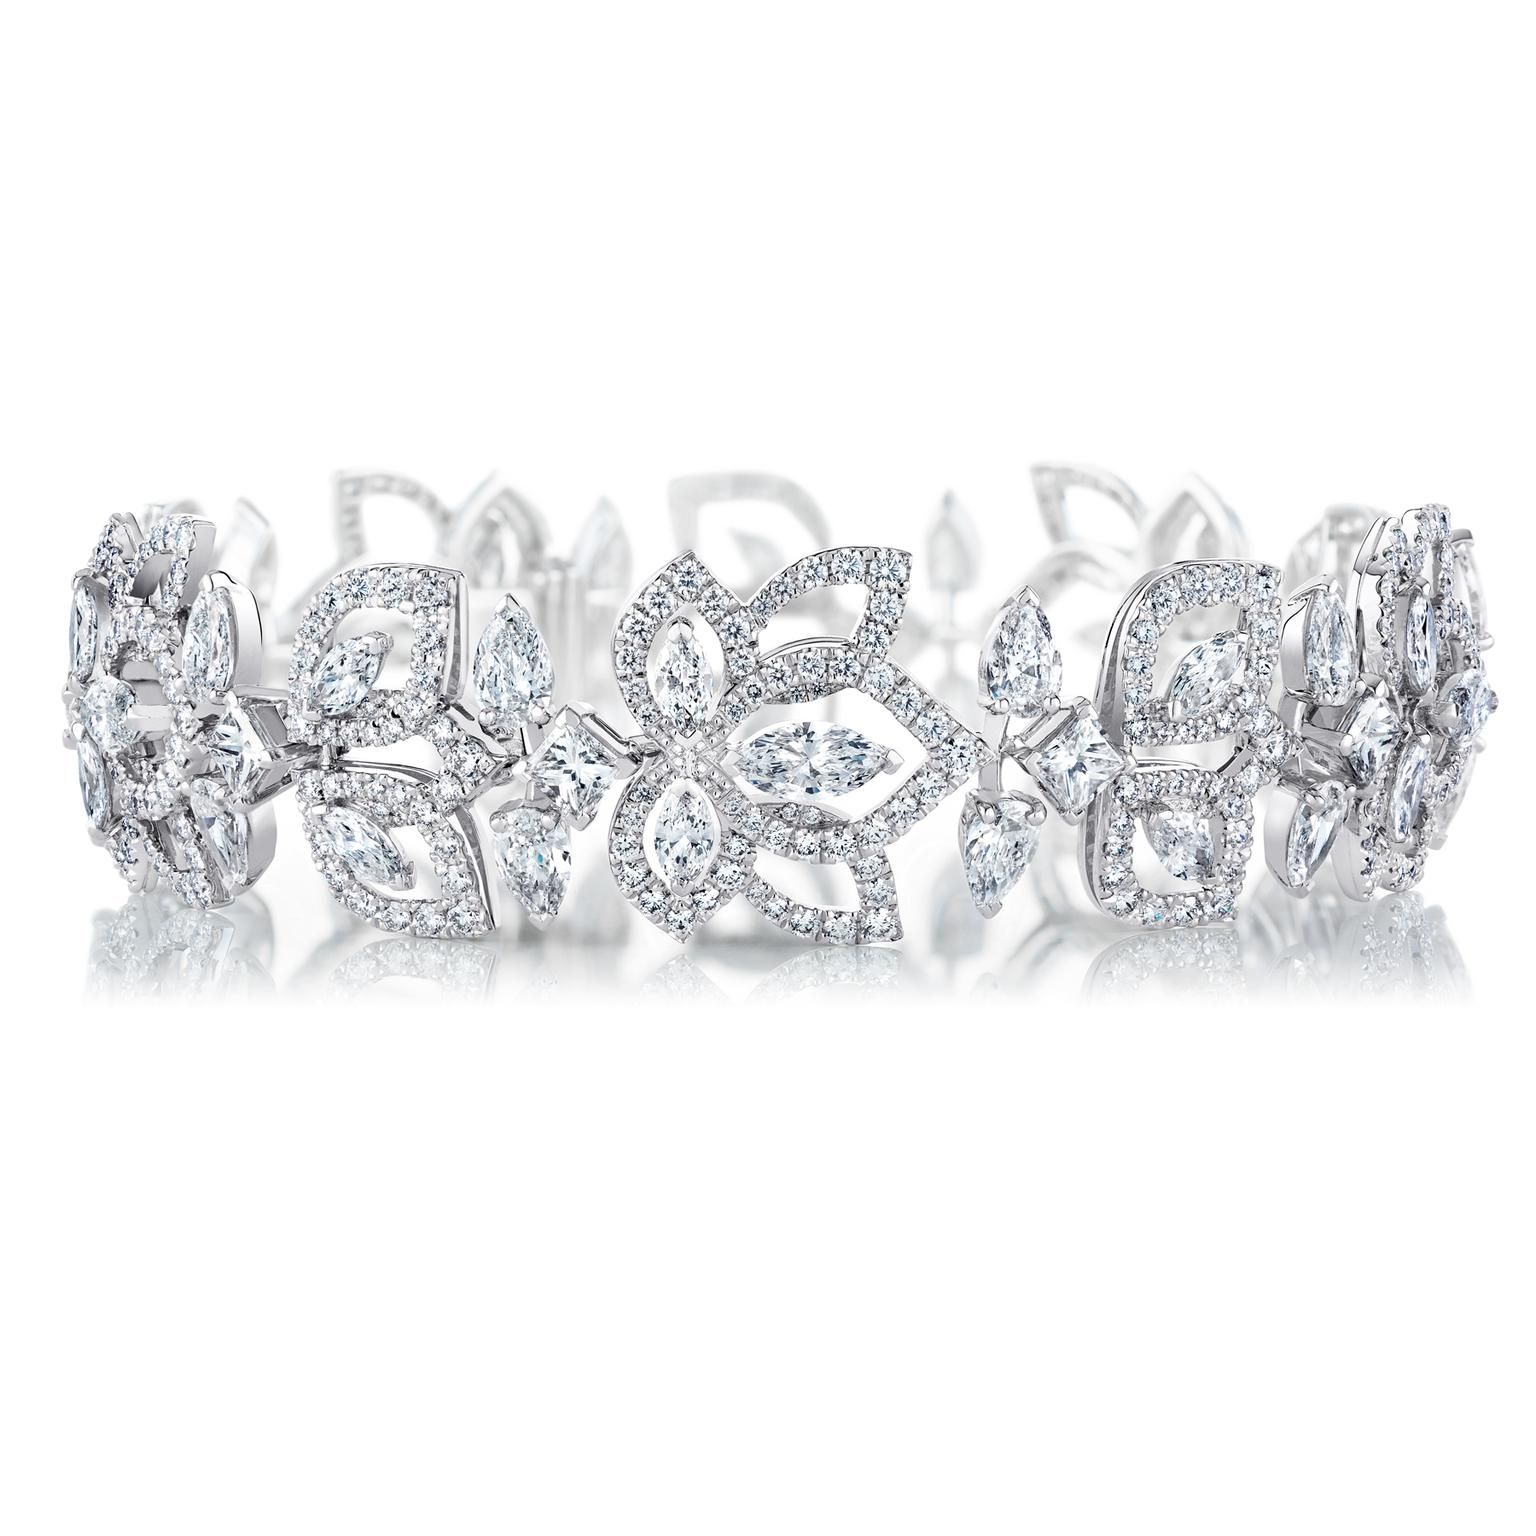 De Beers Flourishing Lotus high jewellery bracelet